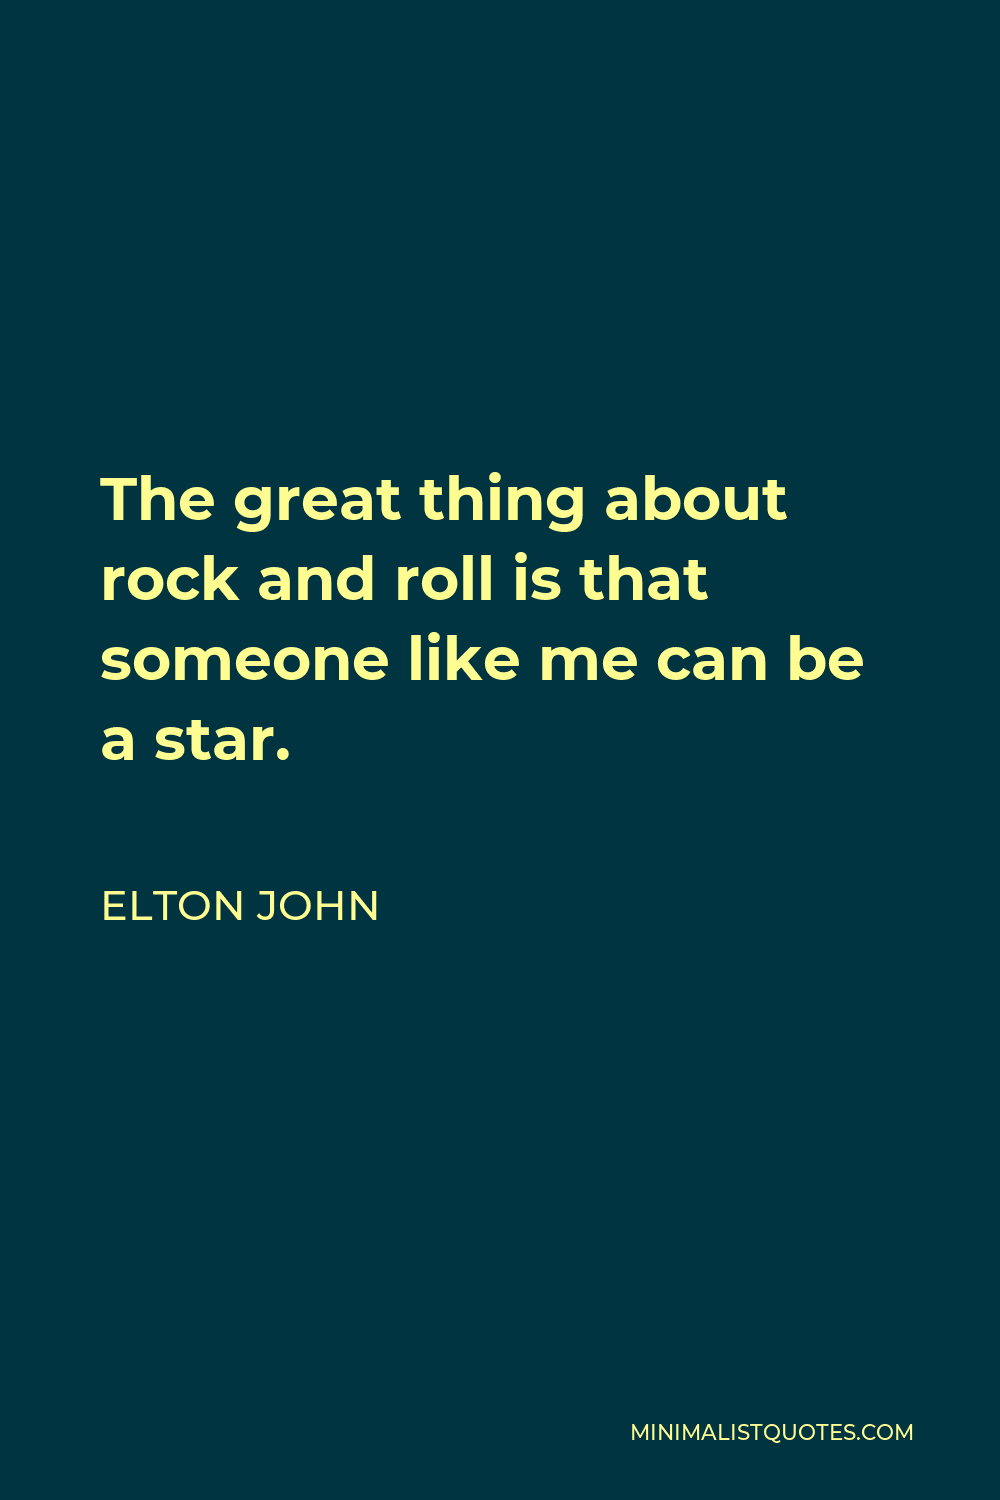 Elton John Quote - The great thing about rock and roll is that someone like me can be a star.